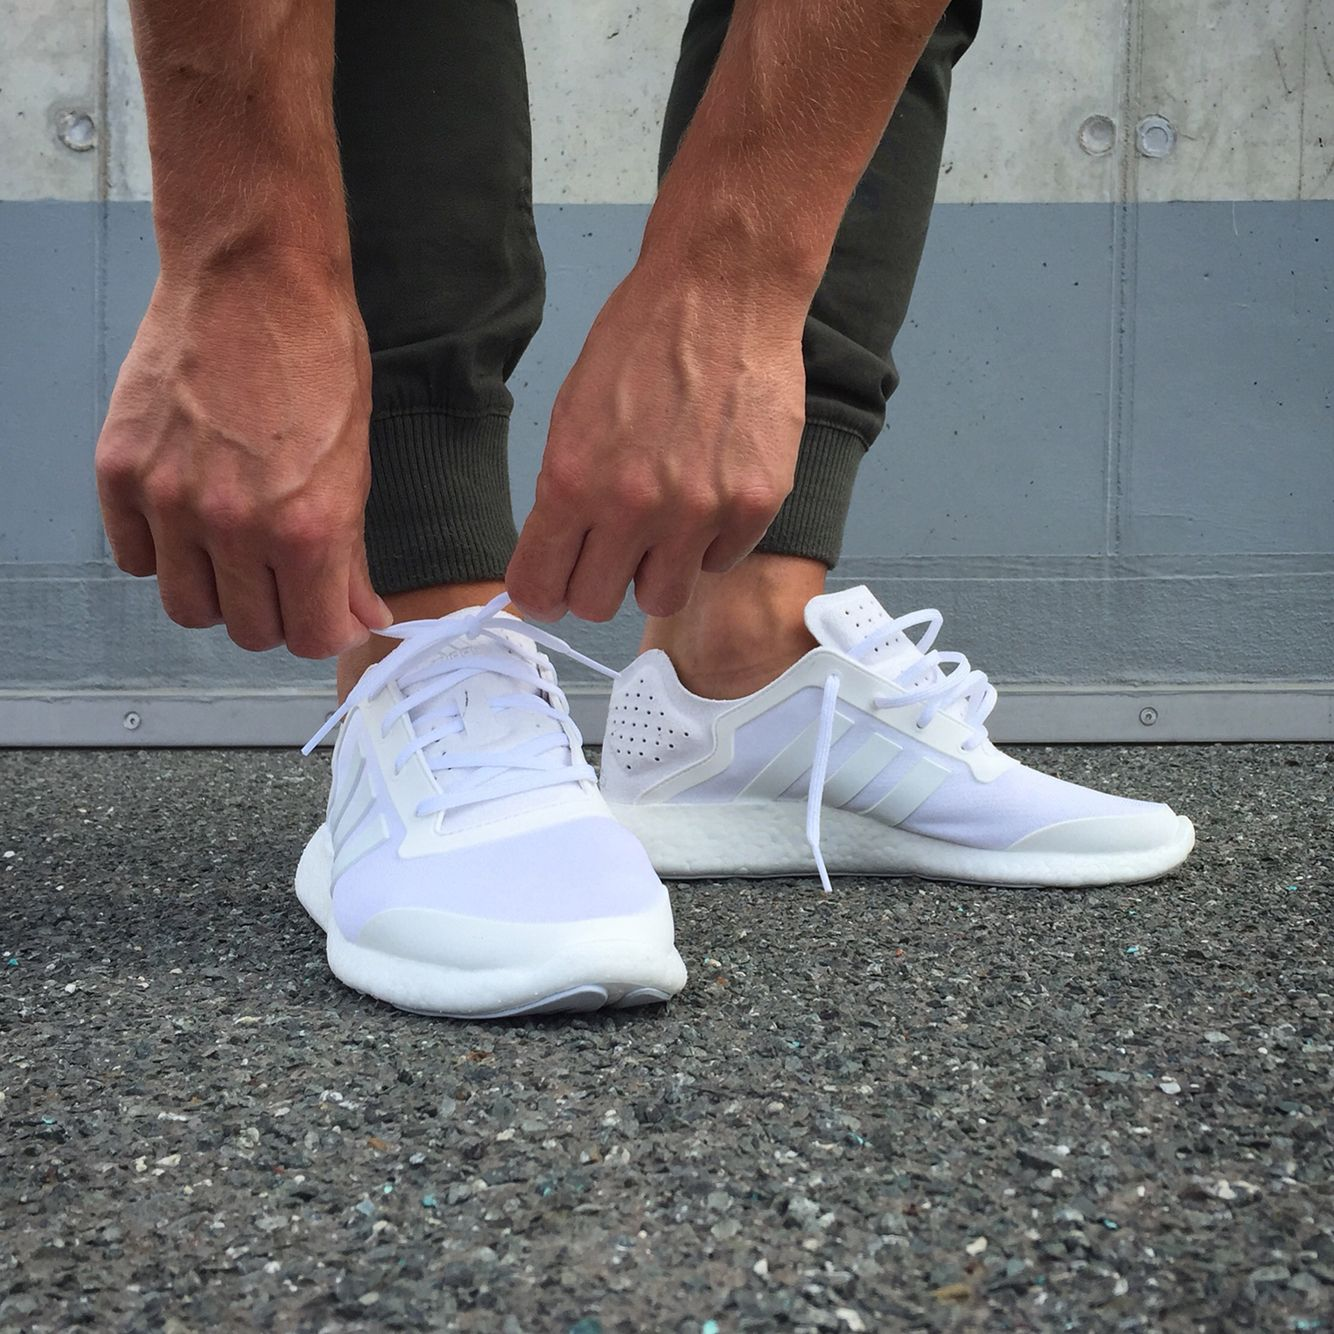 adidas stan smith boost pk adidas sturdy white sports shoes for mens